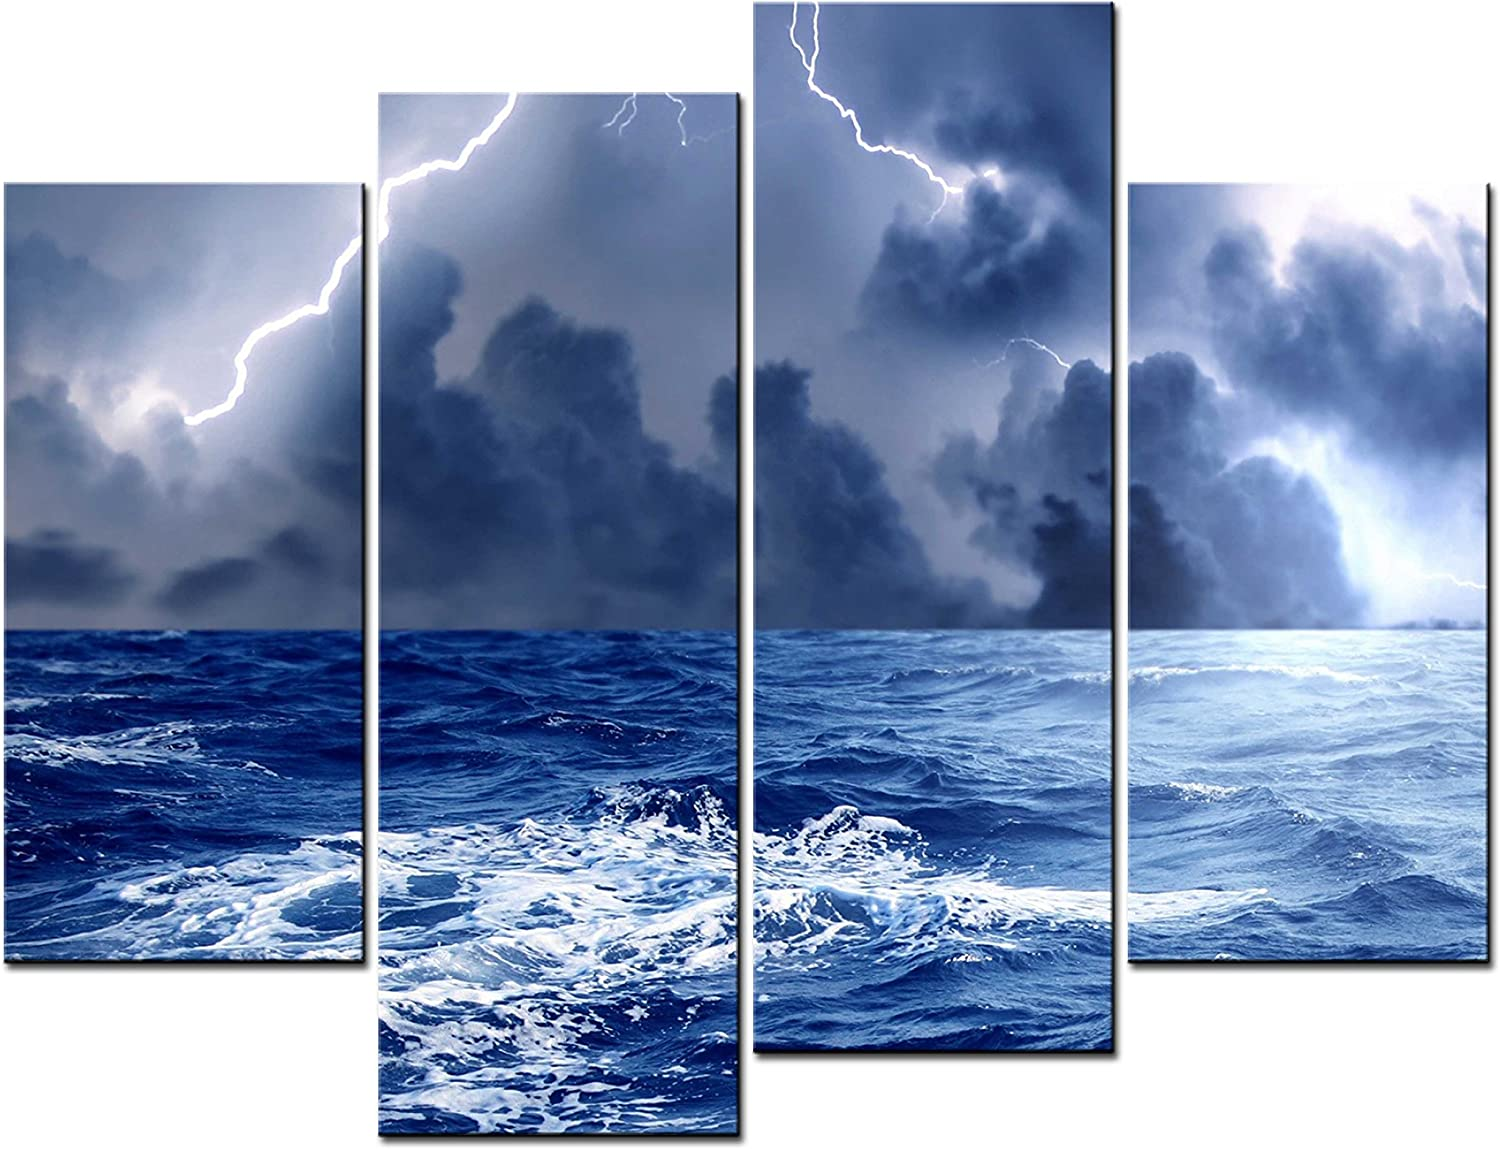 Amazon Com Smartwallart Ocean Landscape Paintings Wall Art The Lightning On The Sea In The Storm 4 Panel Picture Print On Canvas For Modern Home Decoration Posters Prints